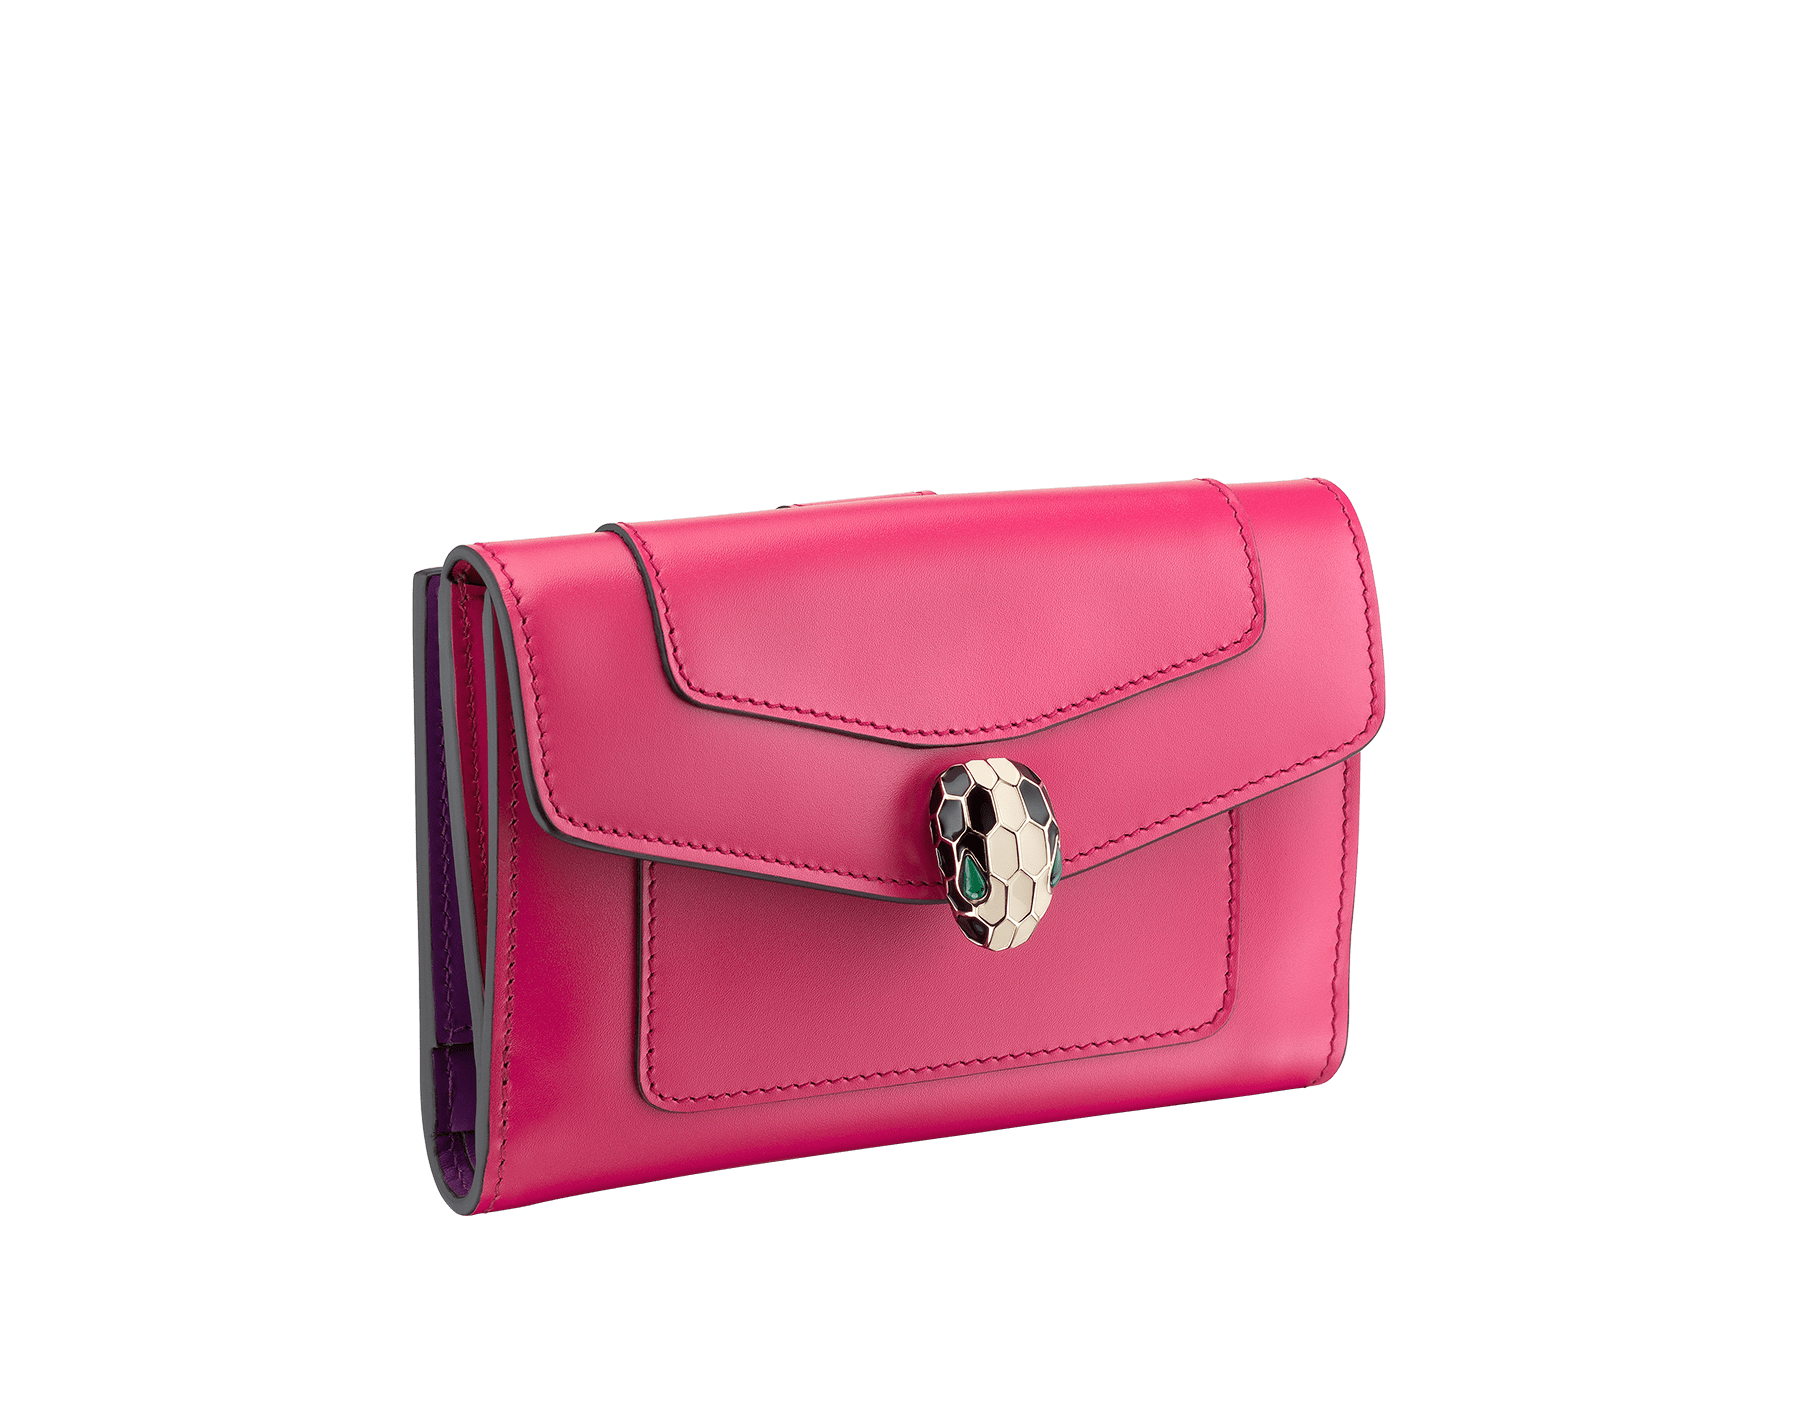 Serpenti Forever compact pochette in jazzy tourmaline and aster amethyst calf leather. Iconic snakehead stud closure in black and white enamel, with green malachite eyes. 287142 image 1